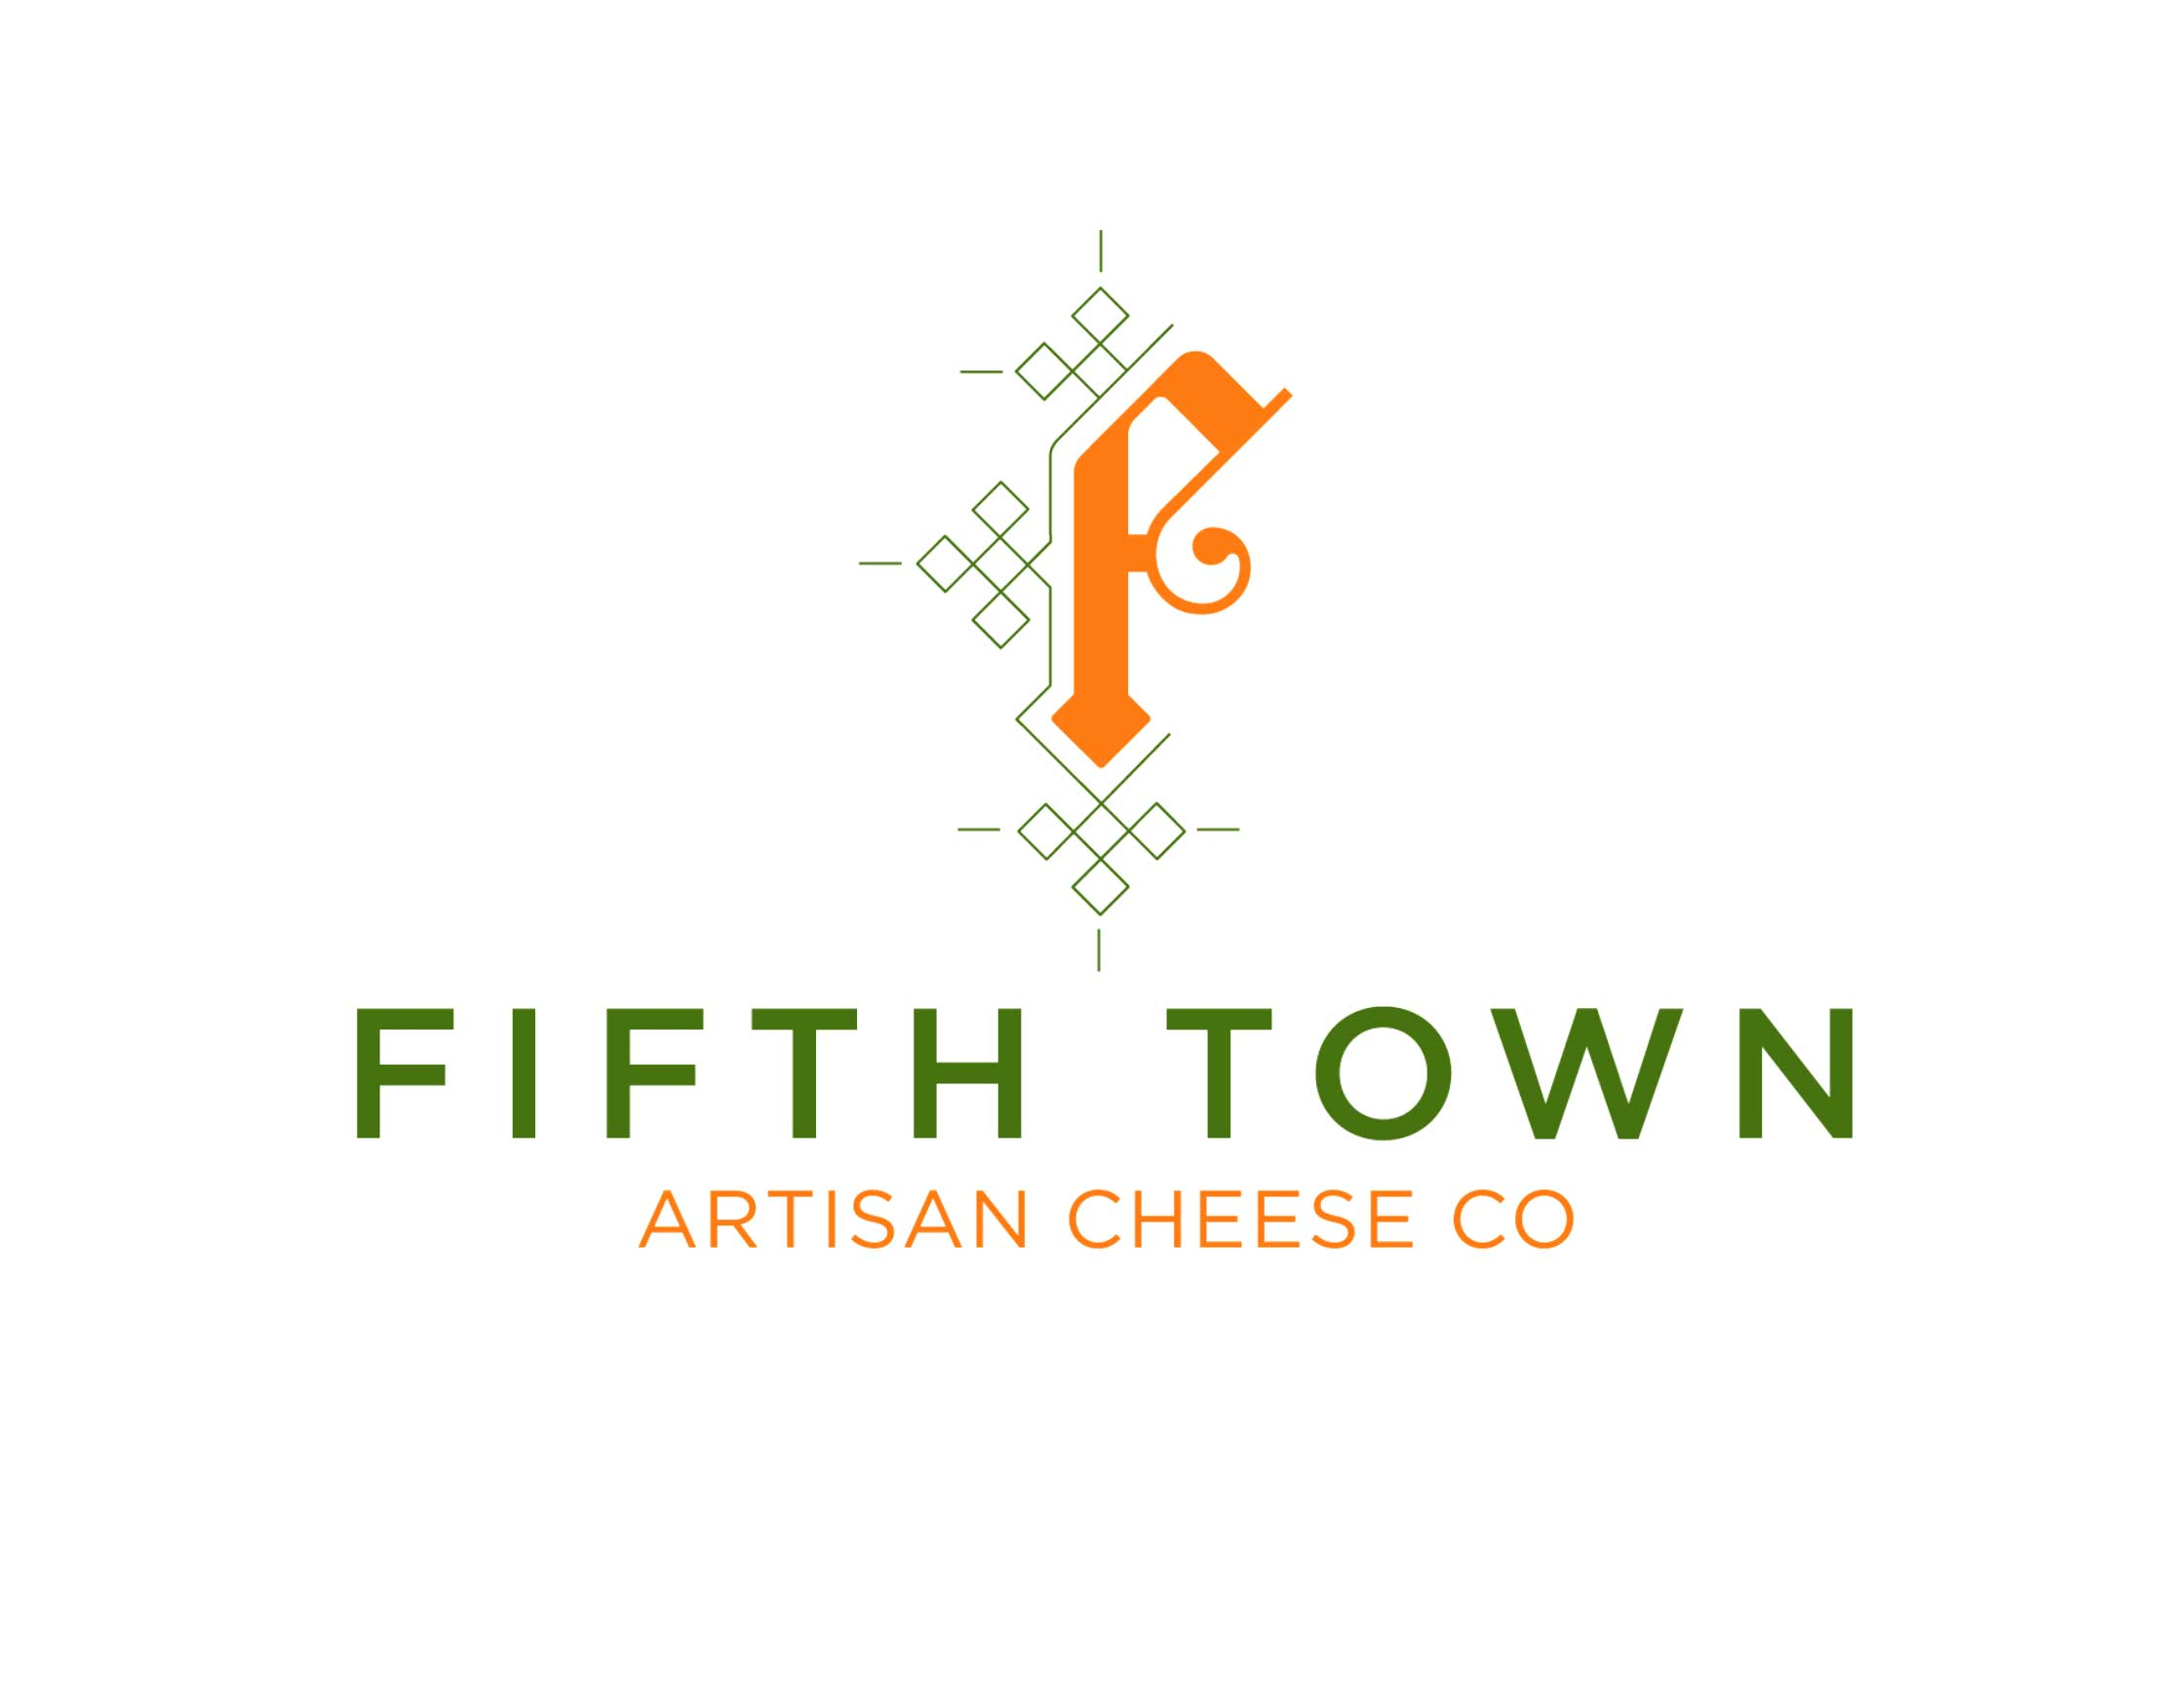 Fifth Town Artisan Cheese